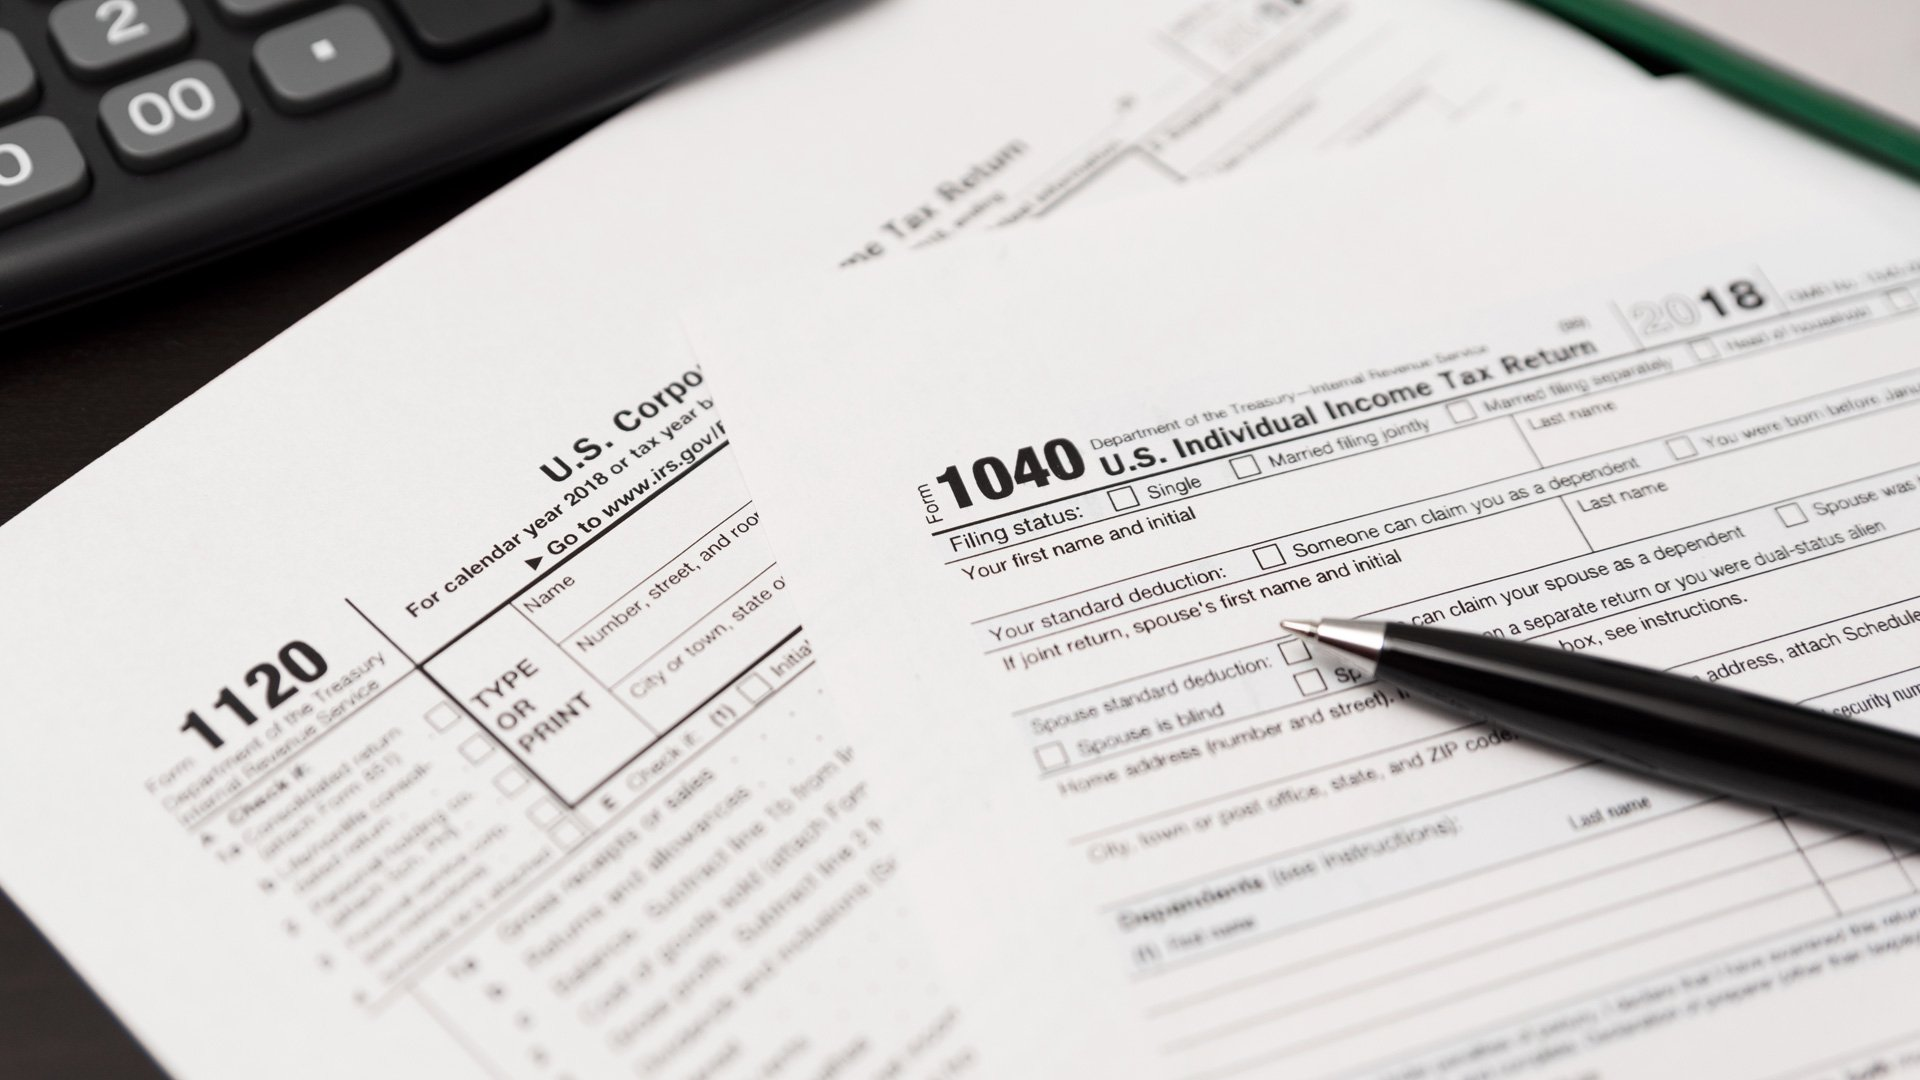 Get help with your tax return in the Sacramento area